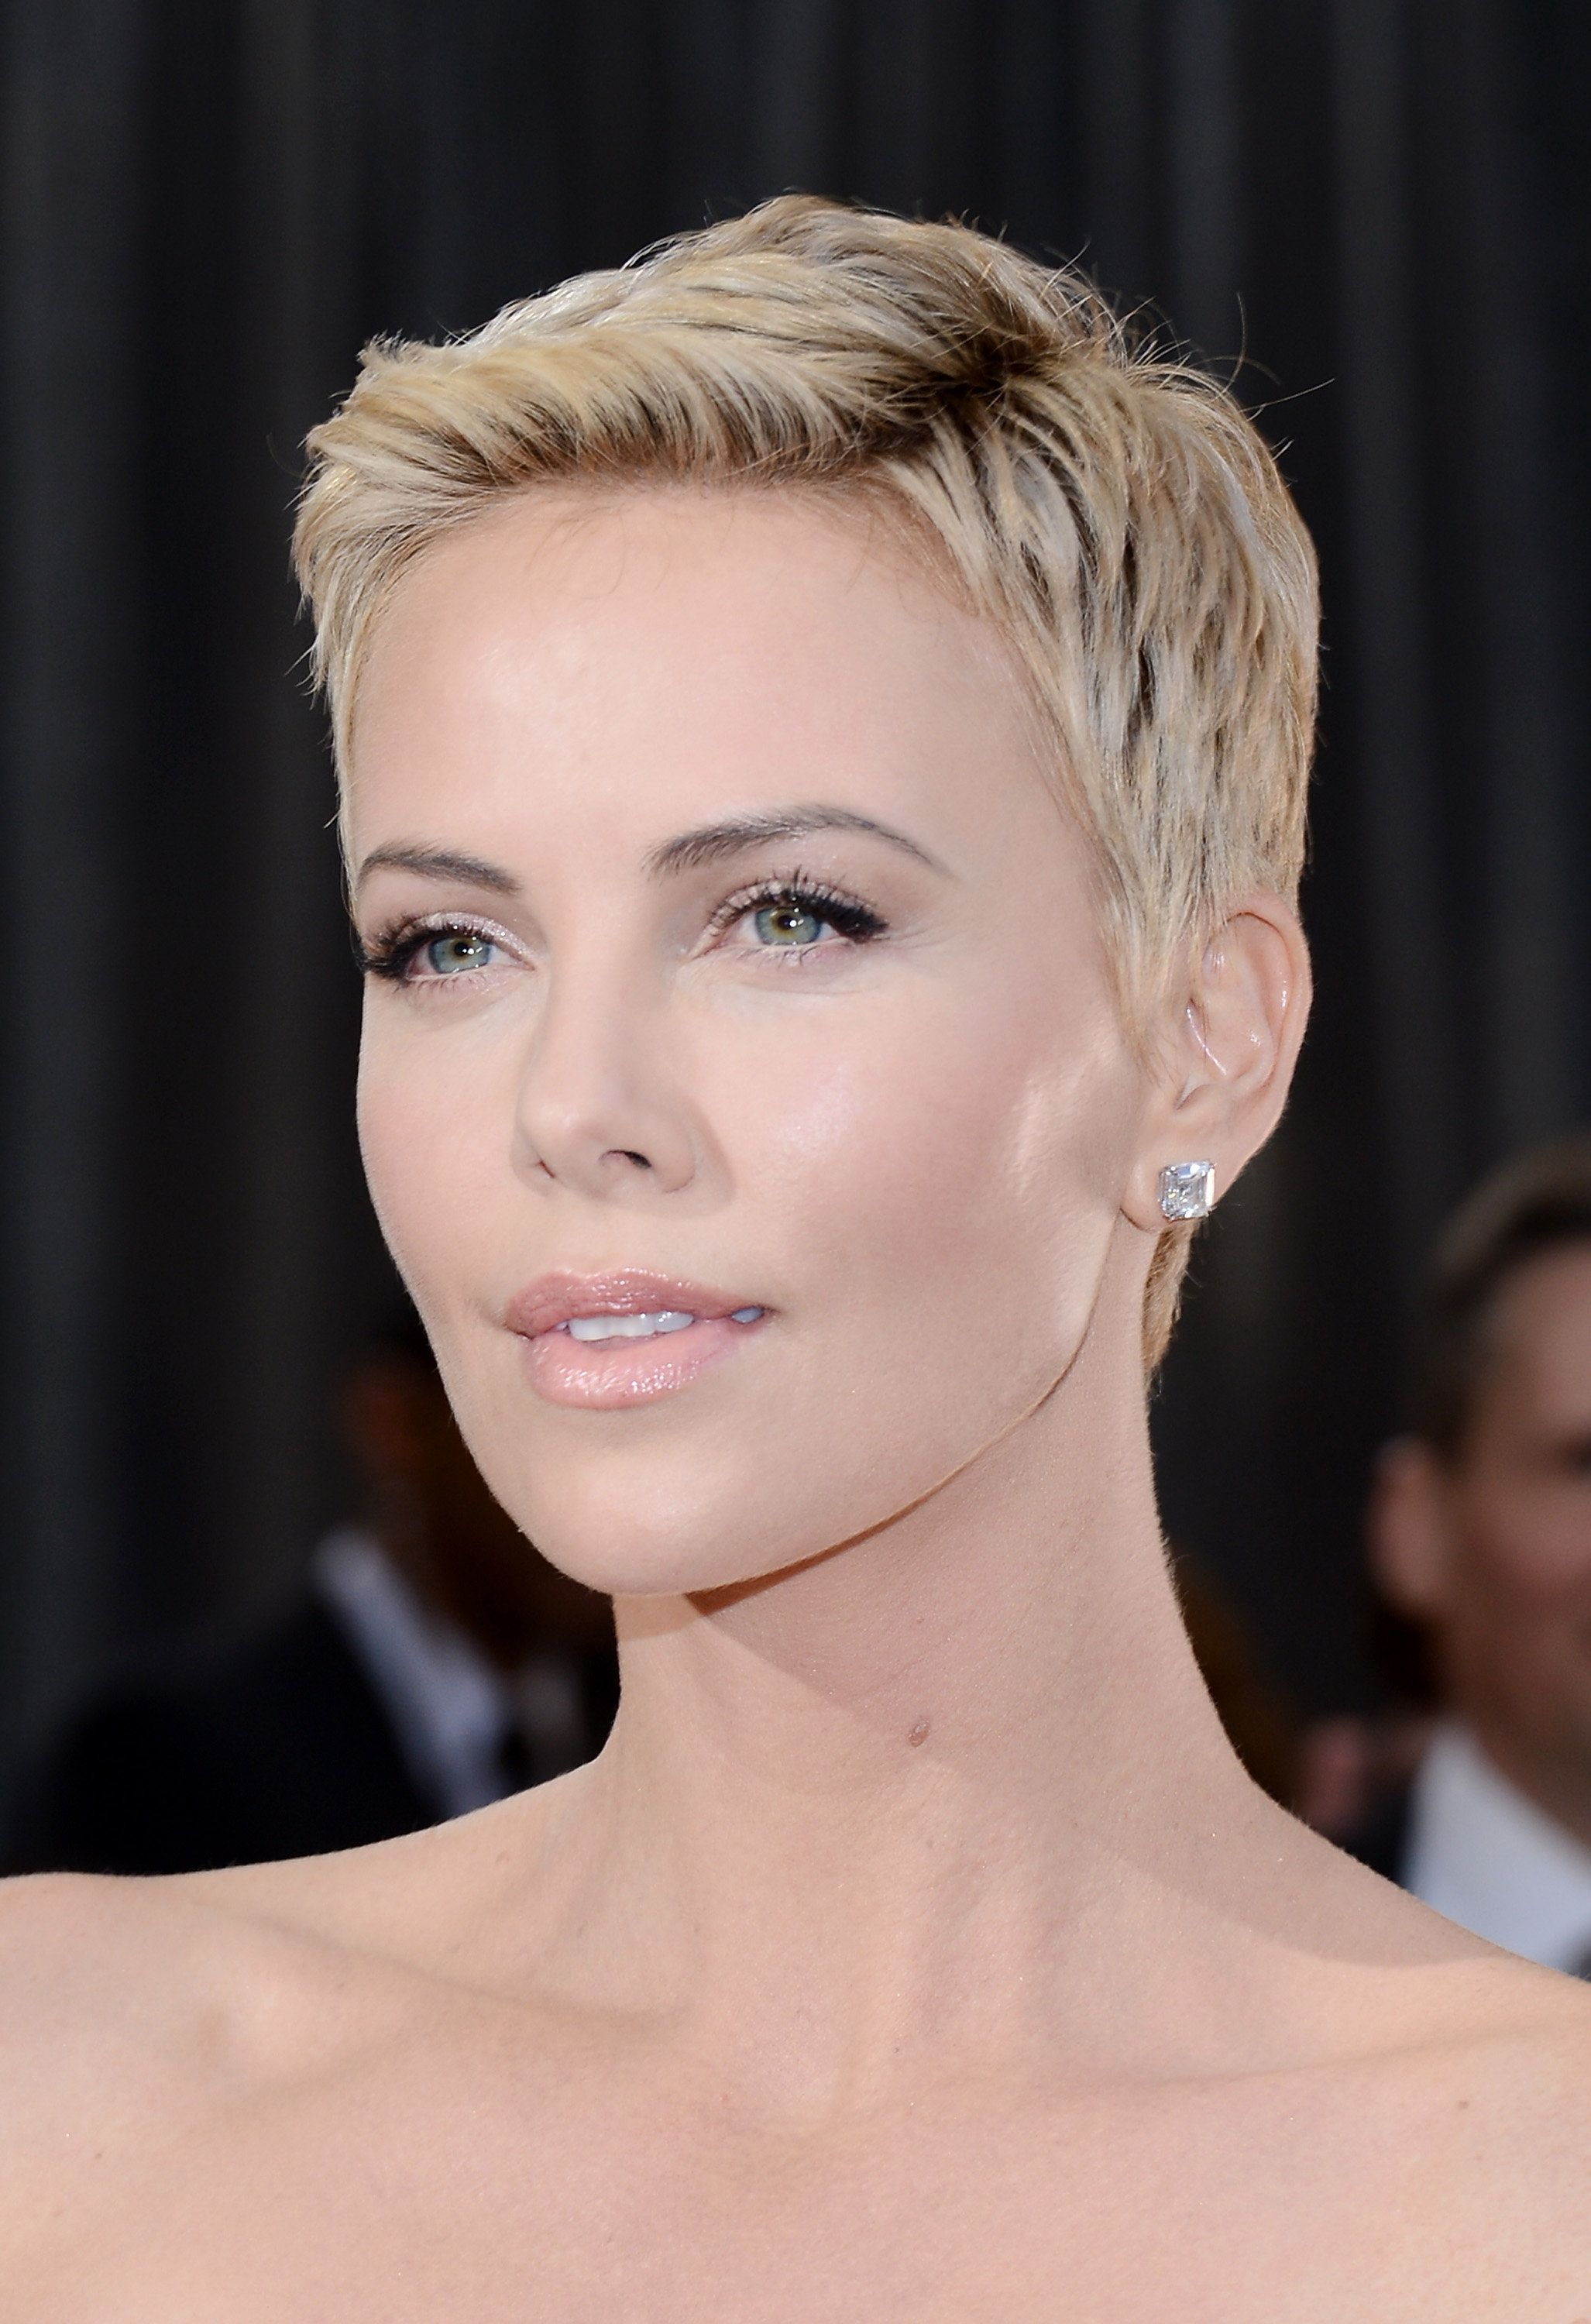 Charlize Theron Haircut 2015 : charlize, theron, haircut, Times, Charlize, Theron, Inspired, Short, HuffPost